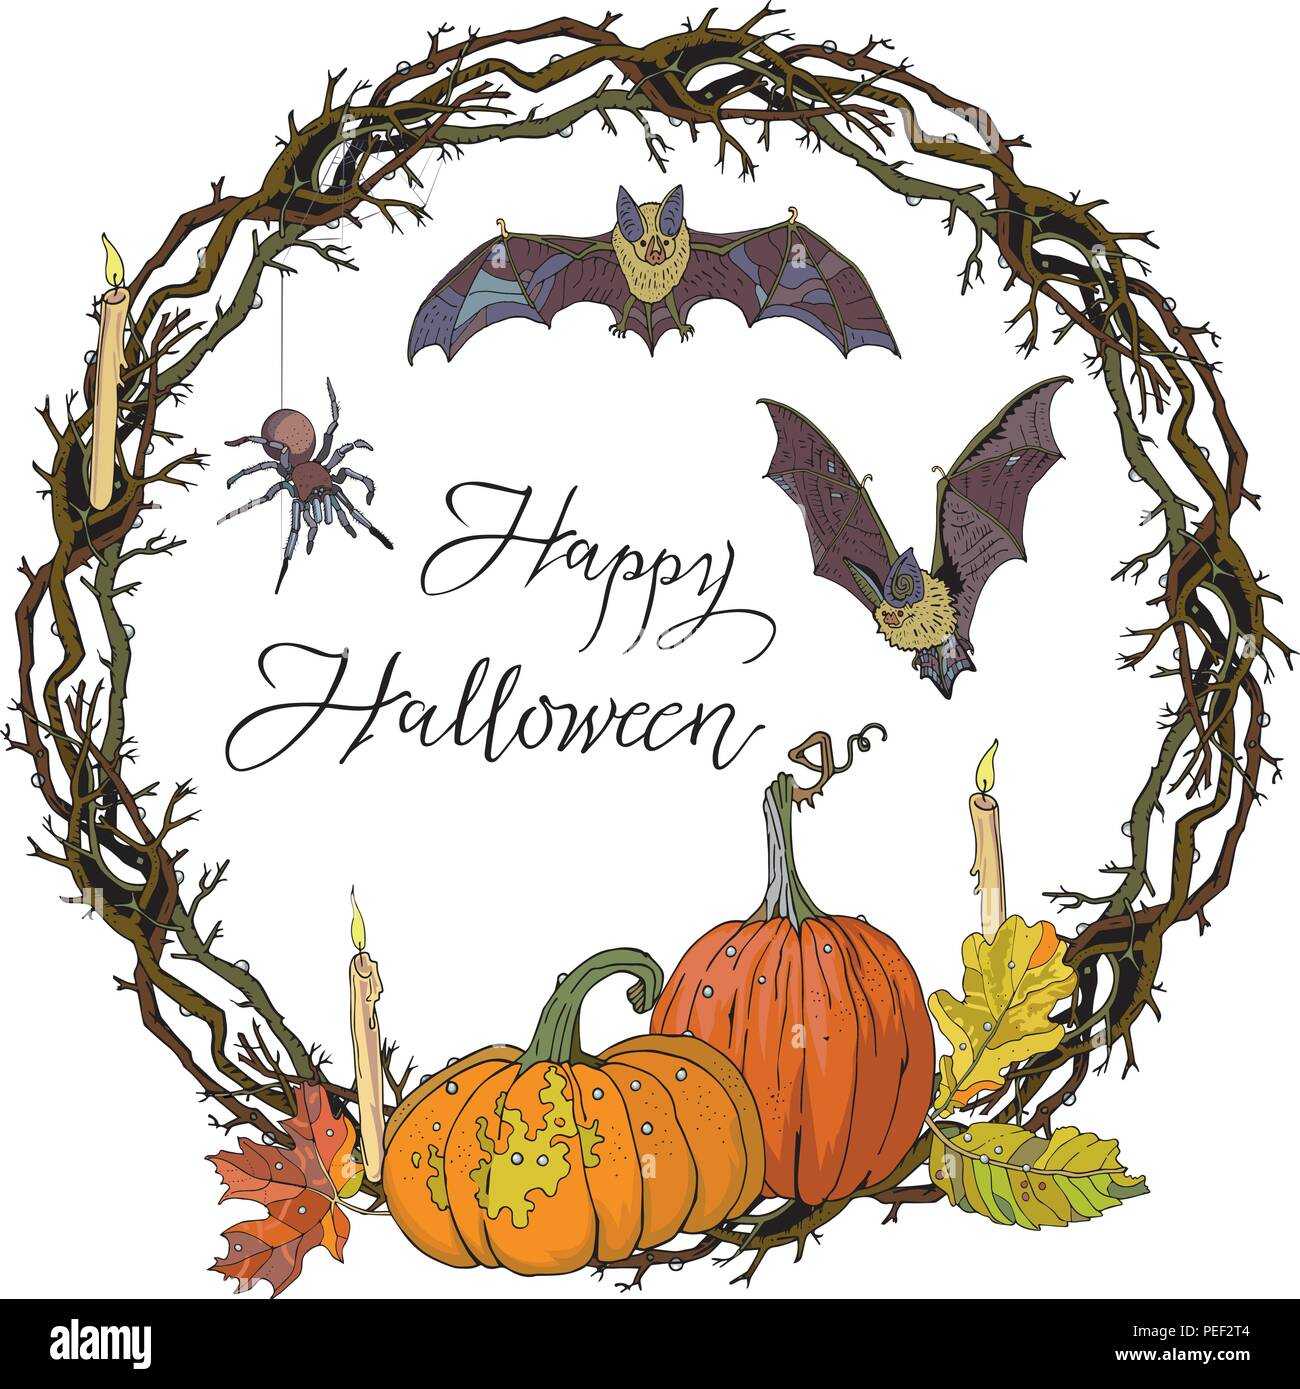 Halloween round gothic branches wreath with pumpkins, candles, autumn leaves, bats and spider. Garland for invitation, greeting card, poster design, advertisement. Hand drawn vector illustration. - Stock Vector